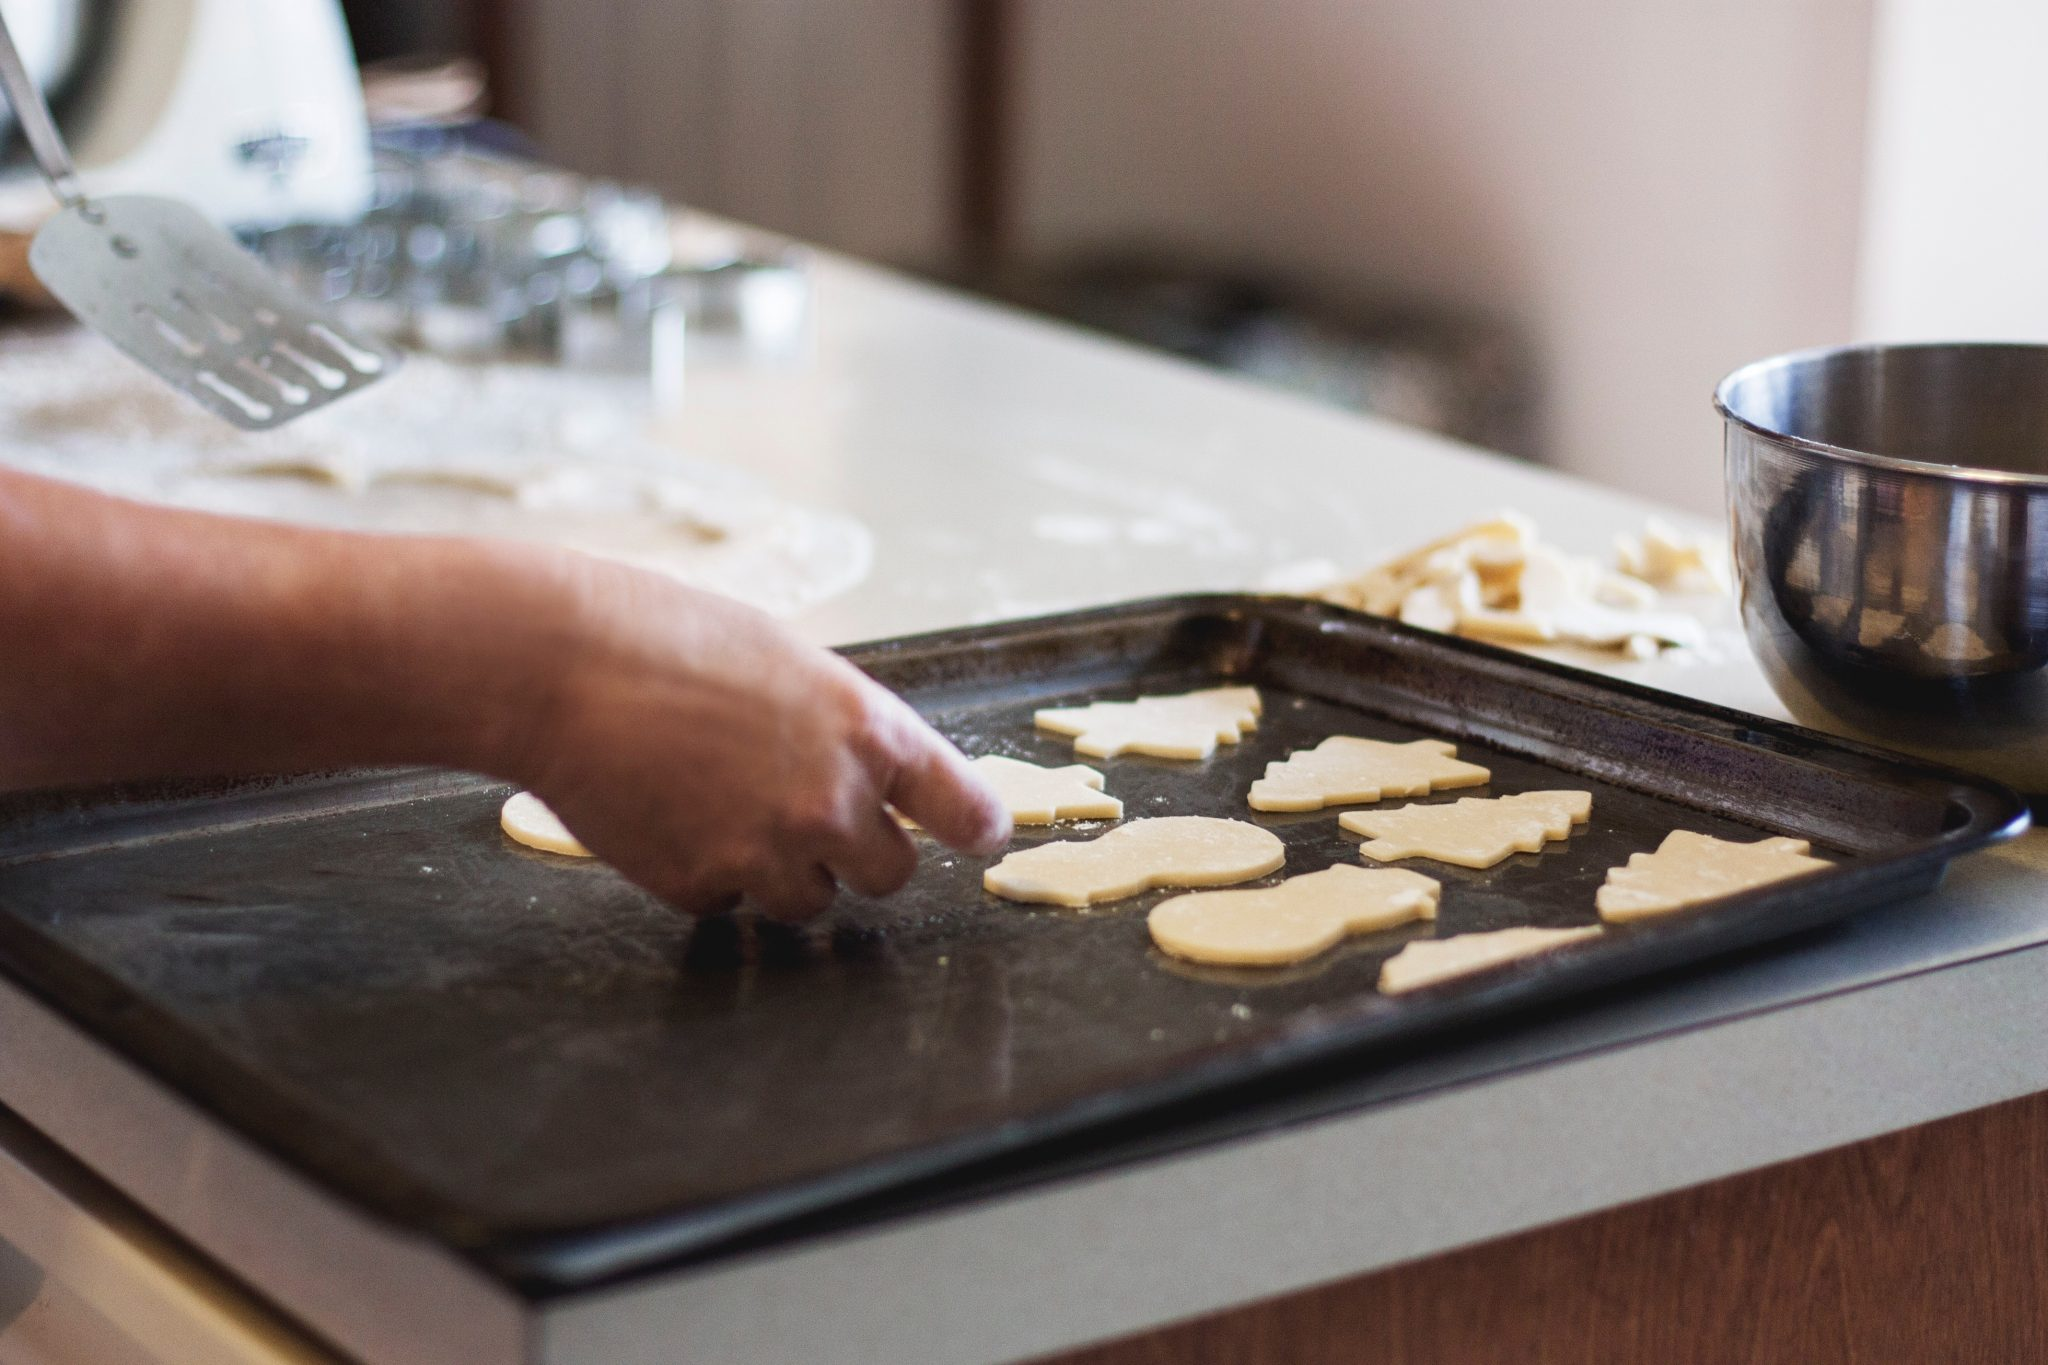 cookie sheet Photo by Kari Shea on Unsplash